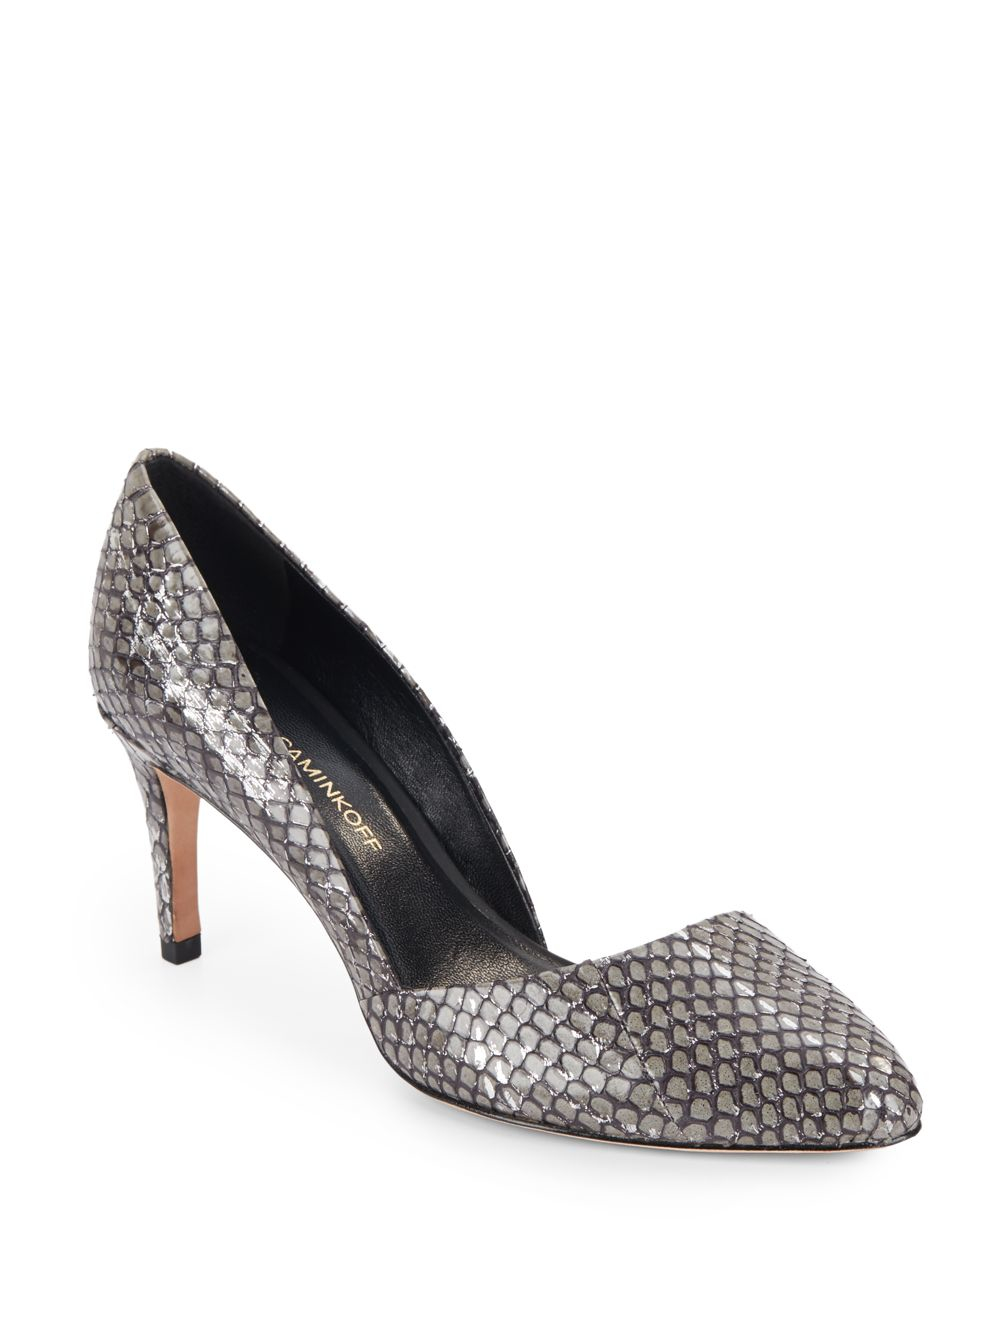 Rebecca Minkoff Embossed Leather Pumps sale order where to buy 5EutTHul